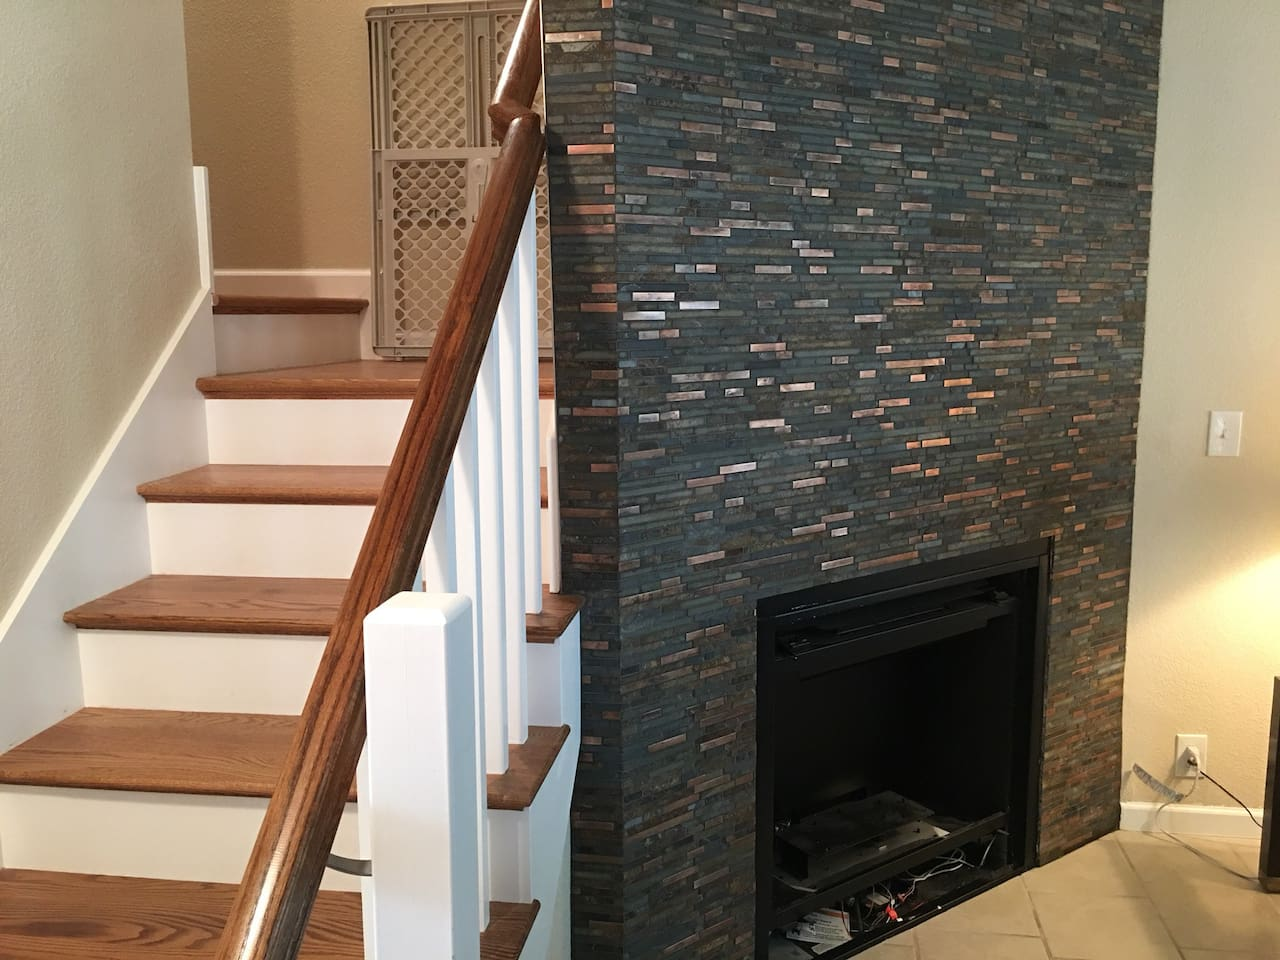 New gas fireplace next to stairs